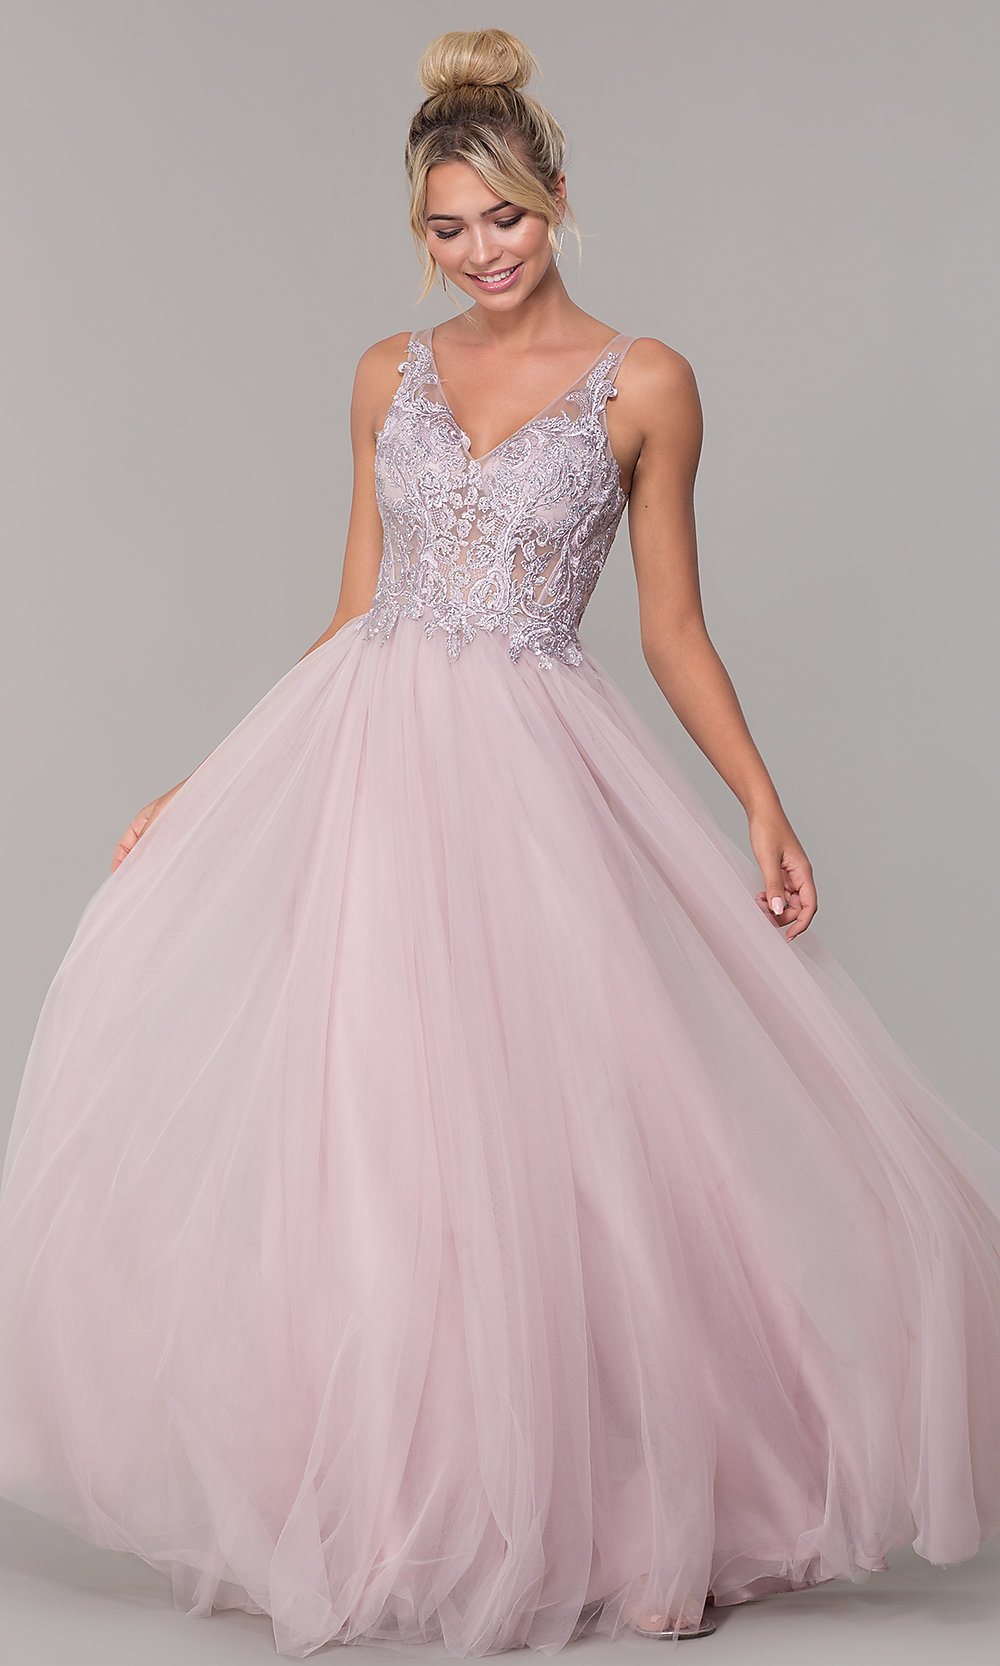 prom dress tulle poofy dresses formal neckline promgirl shipping